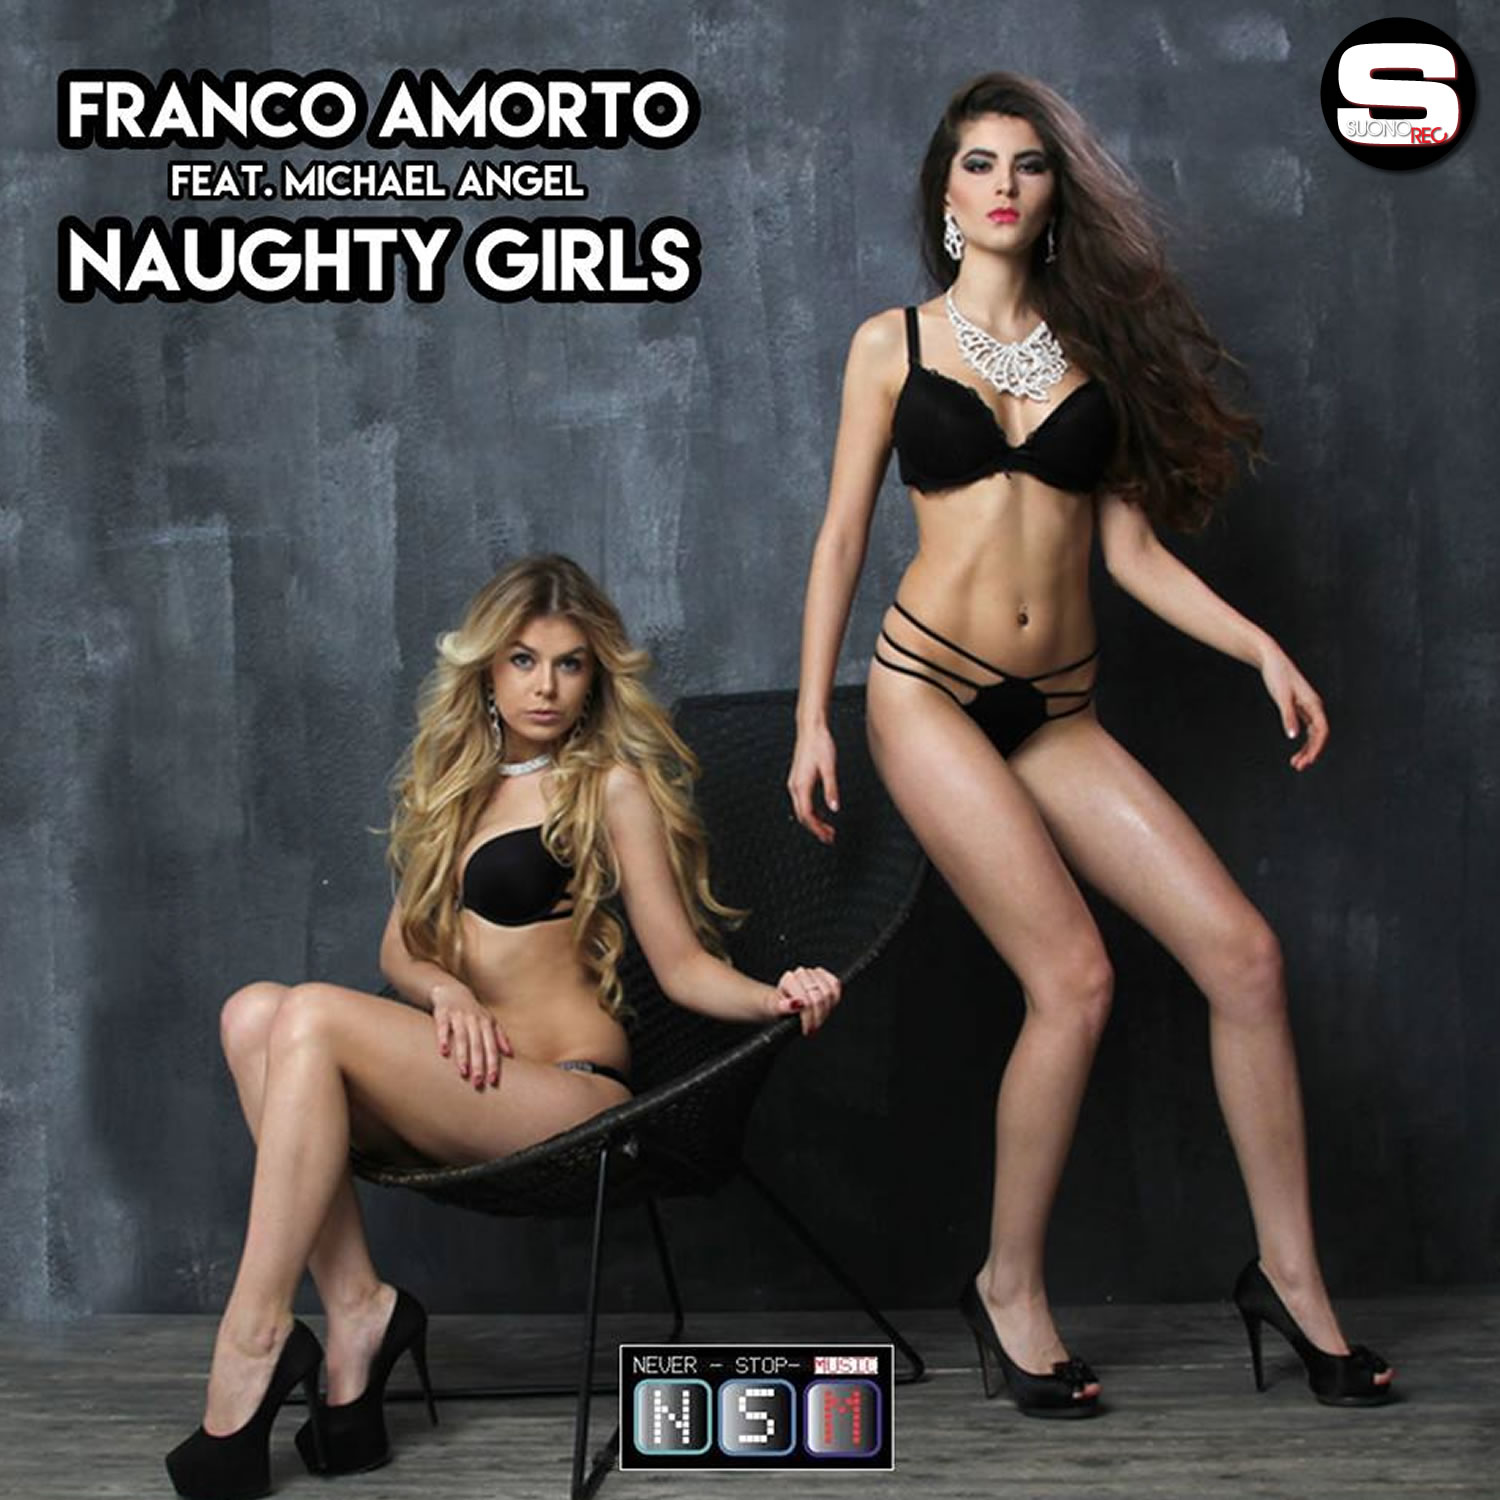 0603404073177_franco-amorto-feat-michael-angel_naughty-girls